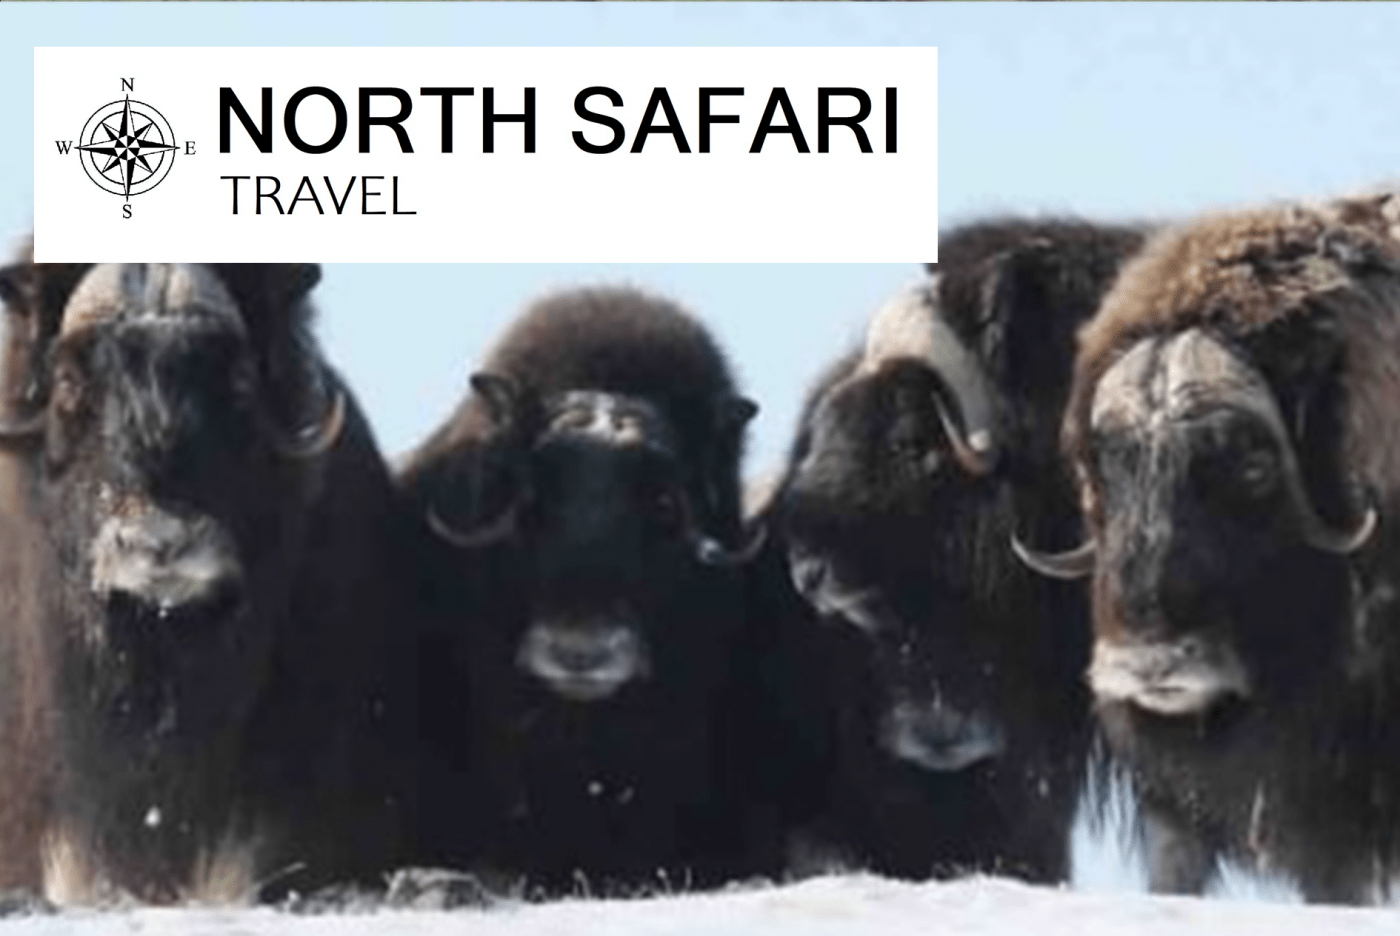 North Safari Travel: Winter safari in march/april